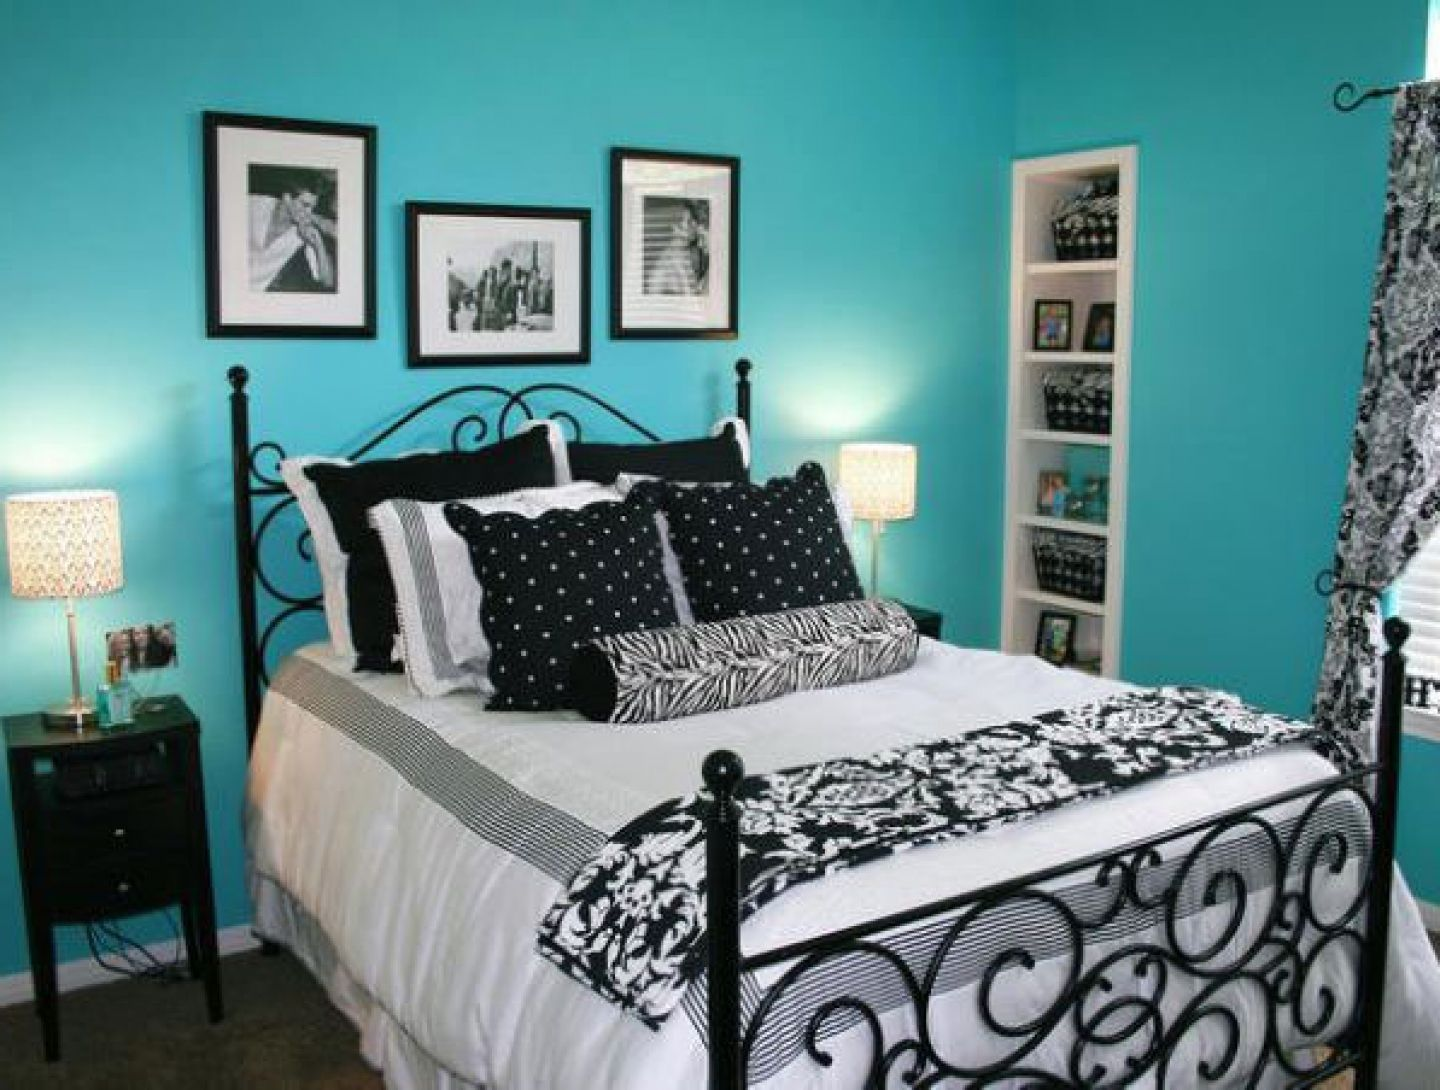 Blue Painted Wall and Classic Black Bed Used in Contemporary Bedroom Ideas for Teens with Small Nightstand